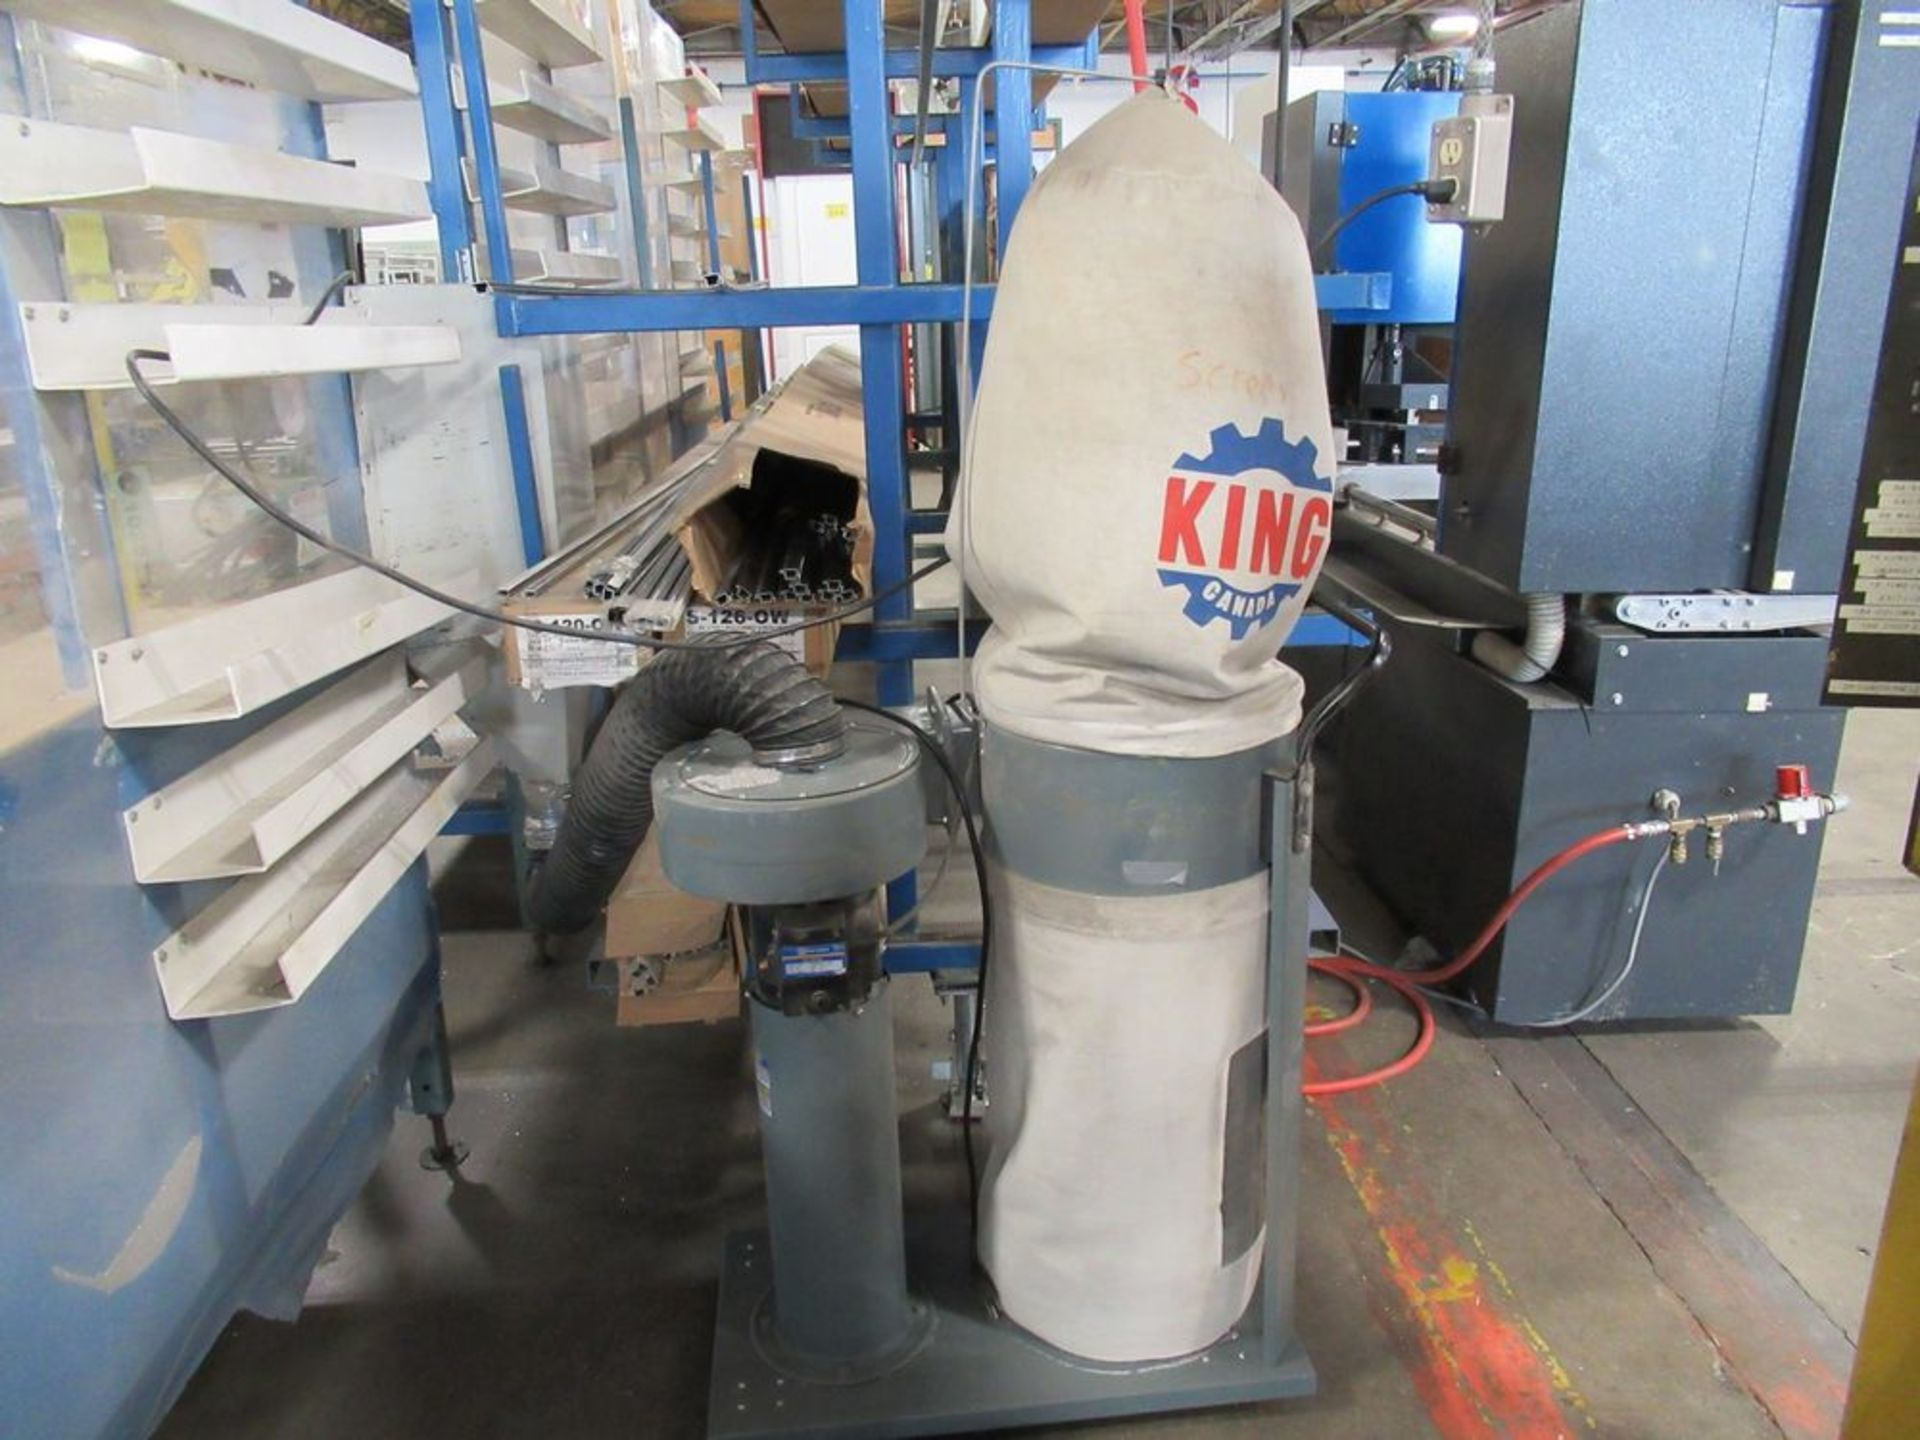 2016 KING CANADA KC-2105C 1HP PORTABLE DUST COLLECTOR, S/N 000374